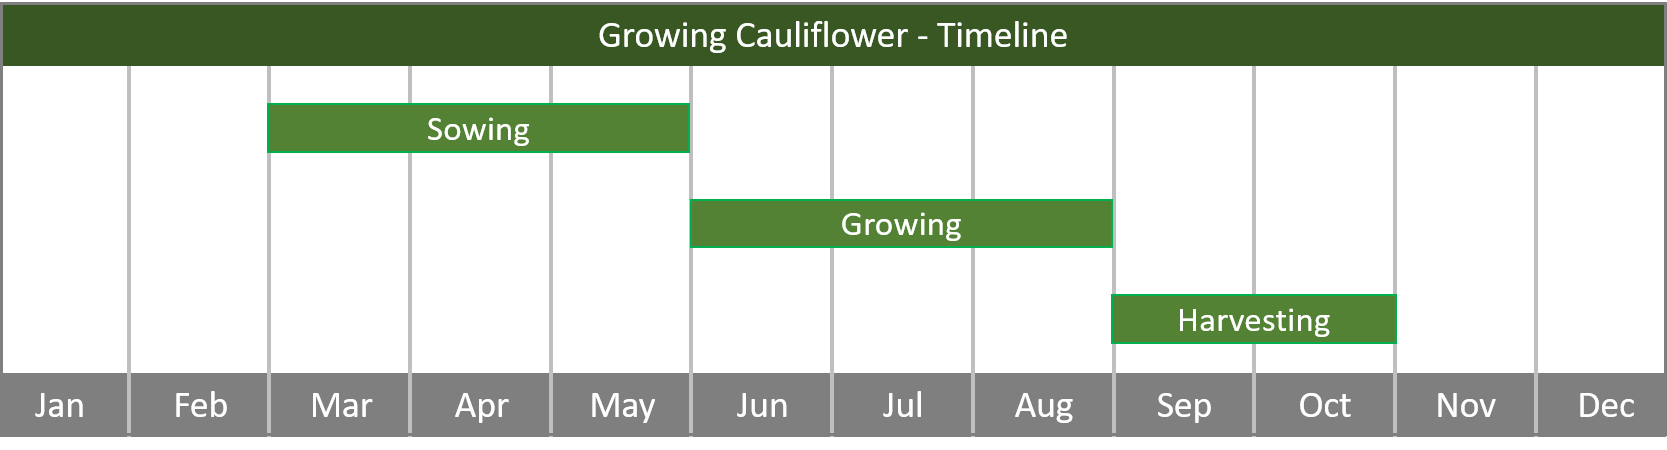 how to grow cauliflower from seed to harvest timeline